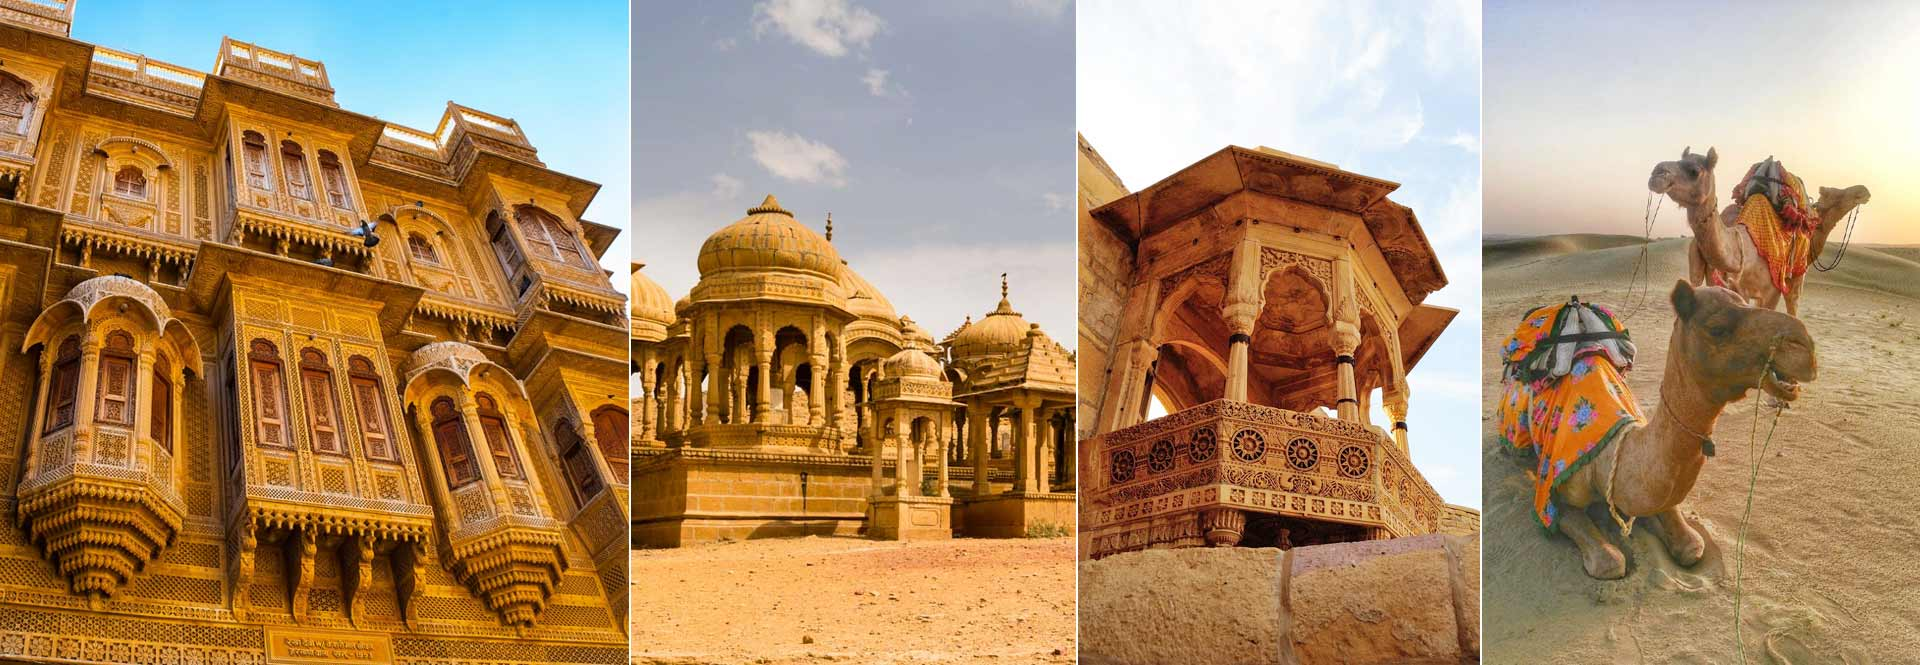 Jaisalmer Tour Package from Pune